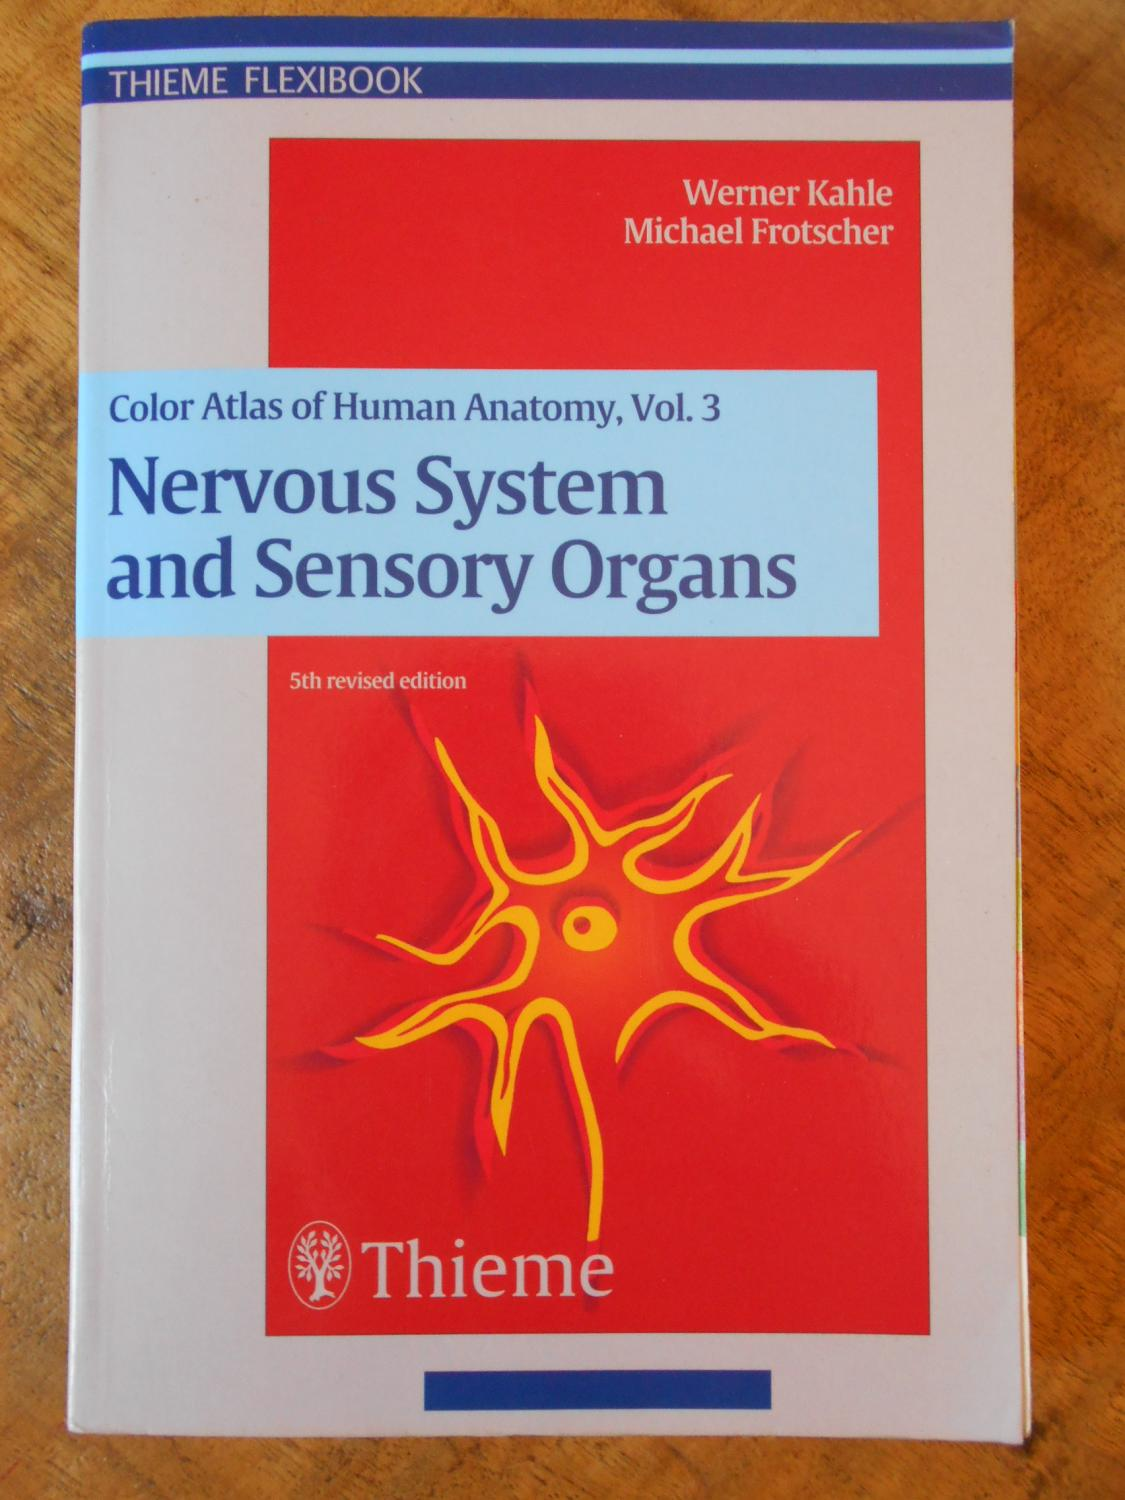 Color Atlas Of Human Anatomy Nervous System And Sensory Organs Vol